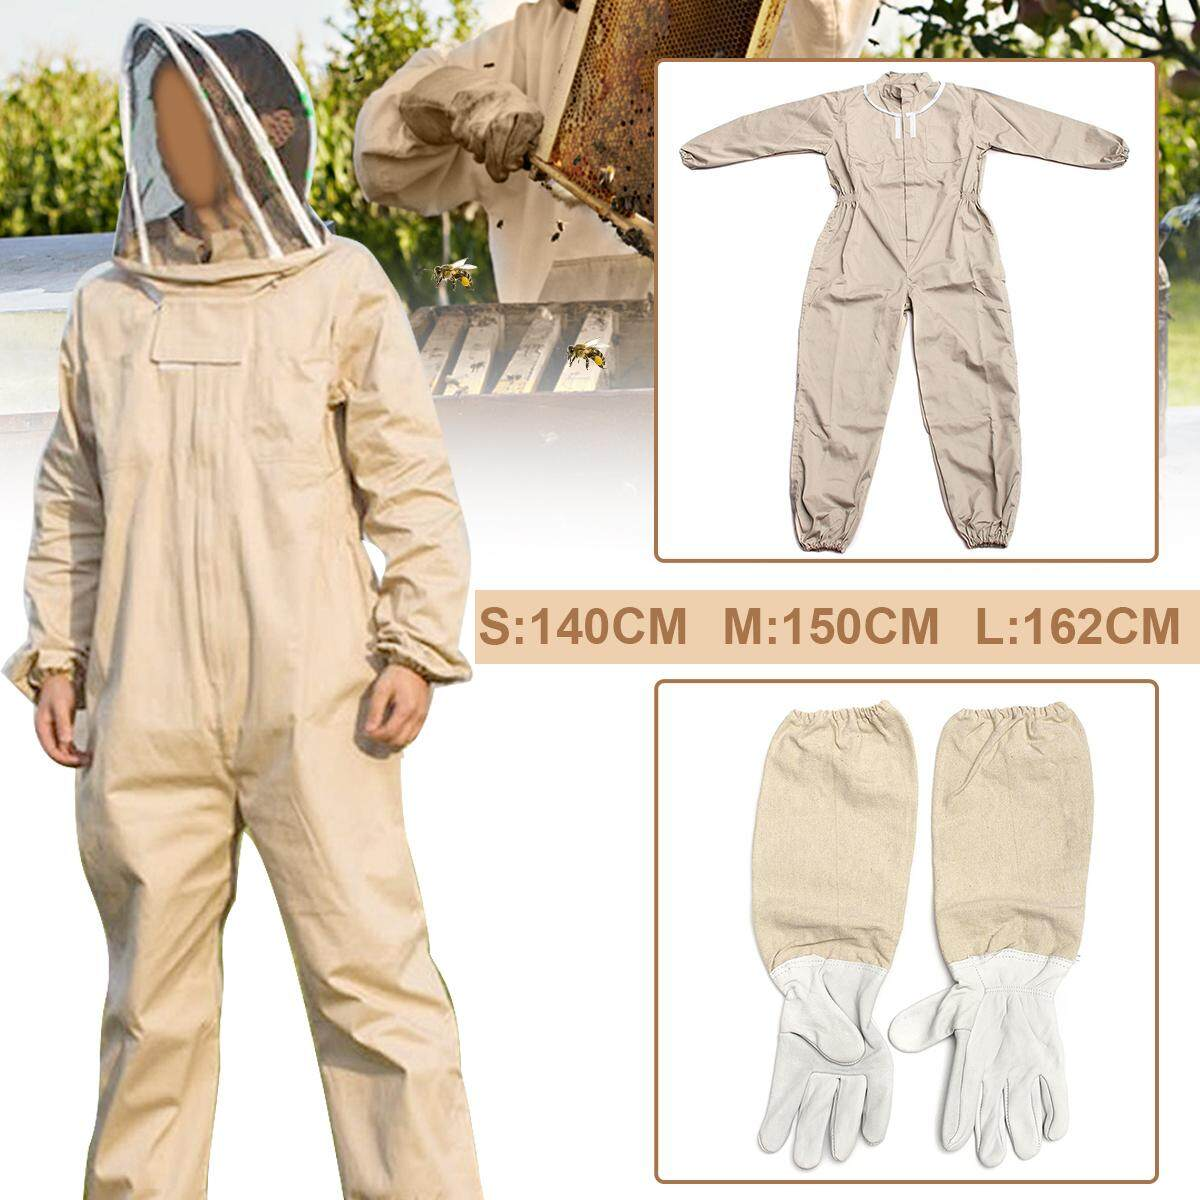 【Free Shipping + Flash Deal 】Full Beekeeping Suit Bee Suit Heavy Duty & Leather Ventilated Keeping Gloves NEW